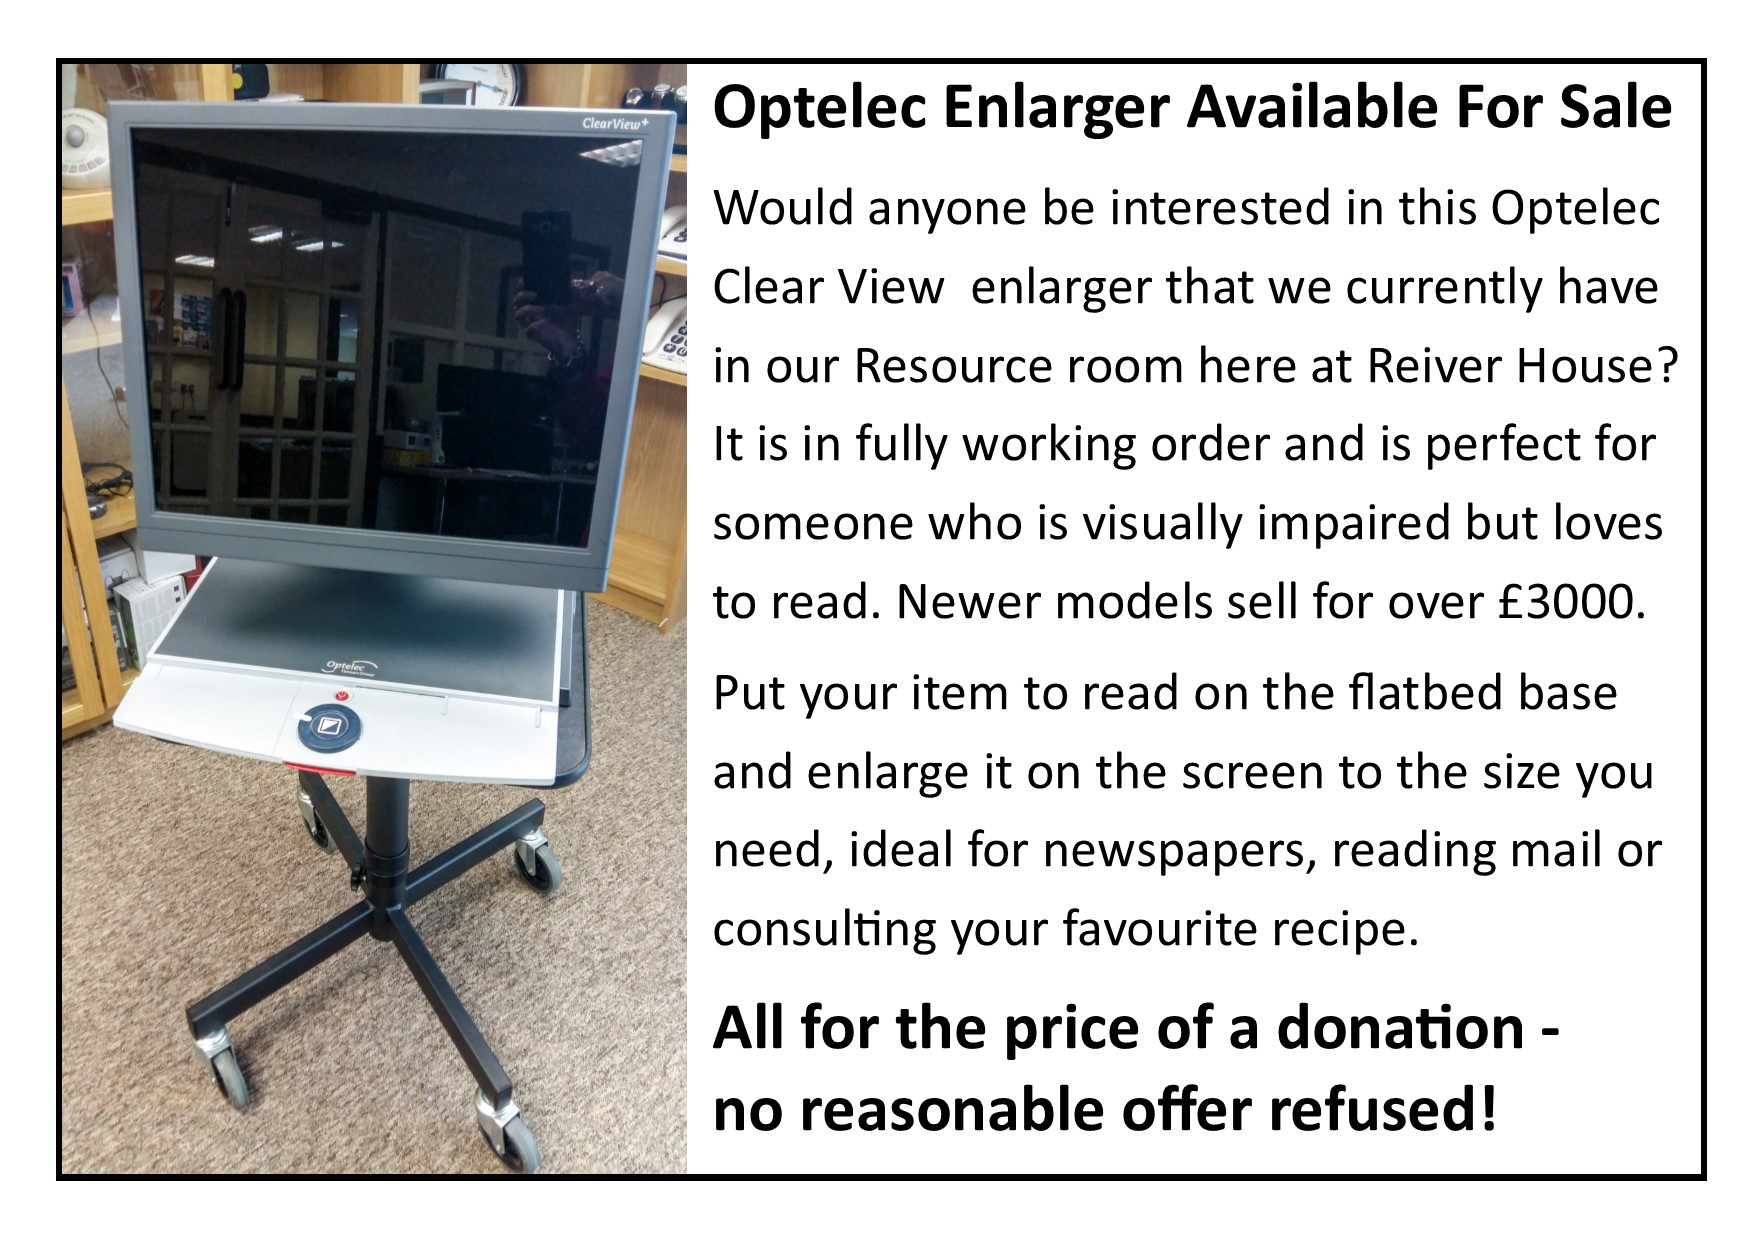 Optelec Enlarger For Sale!